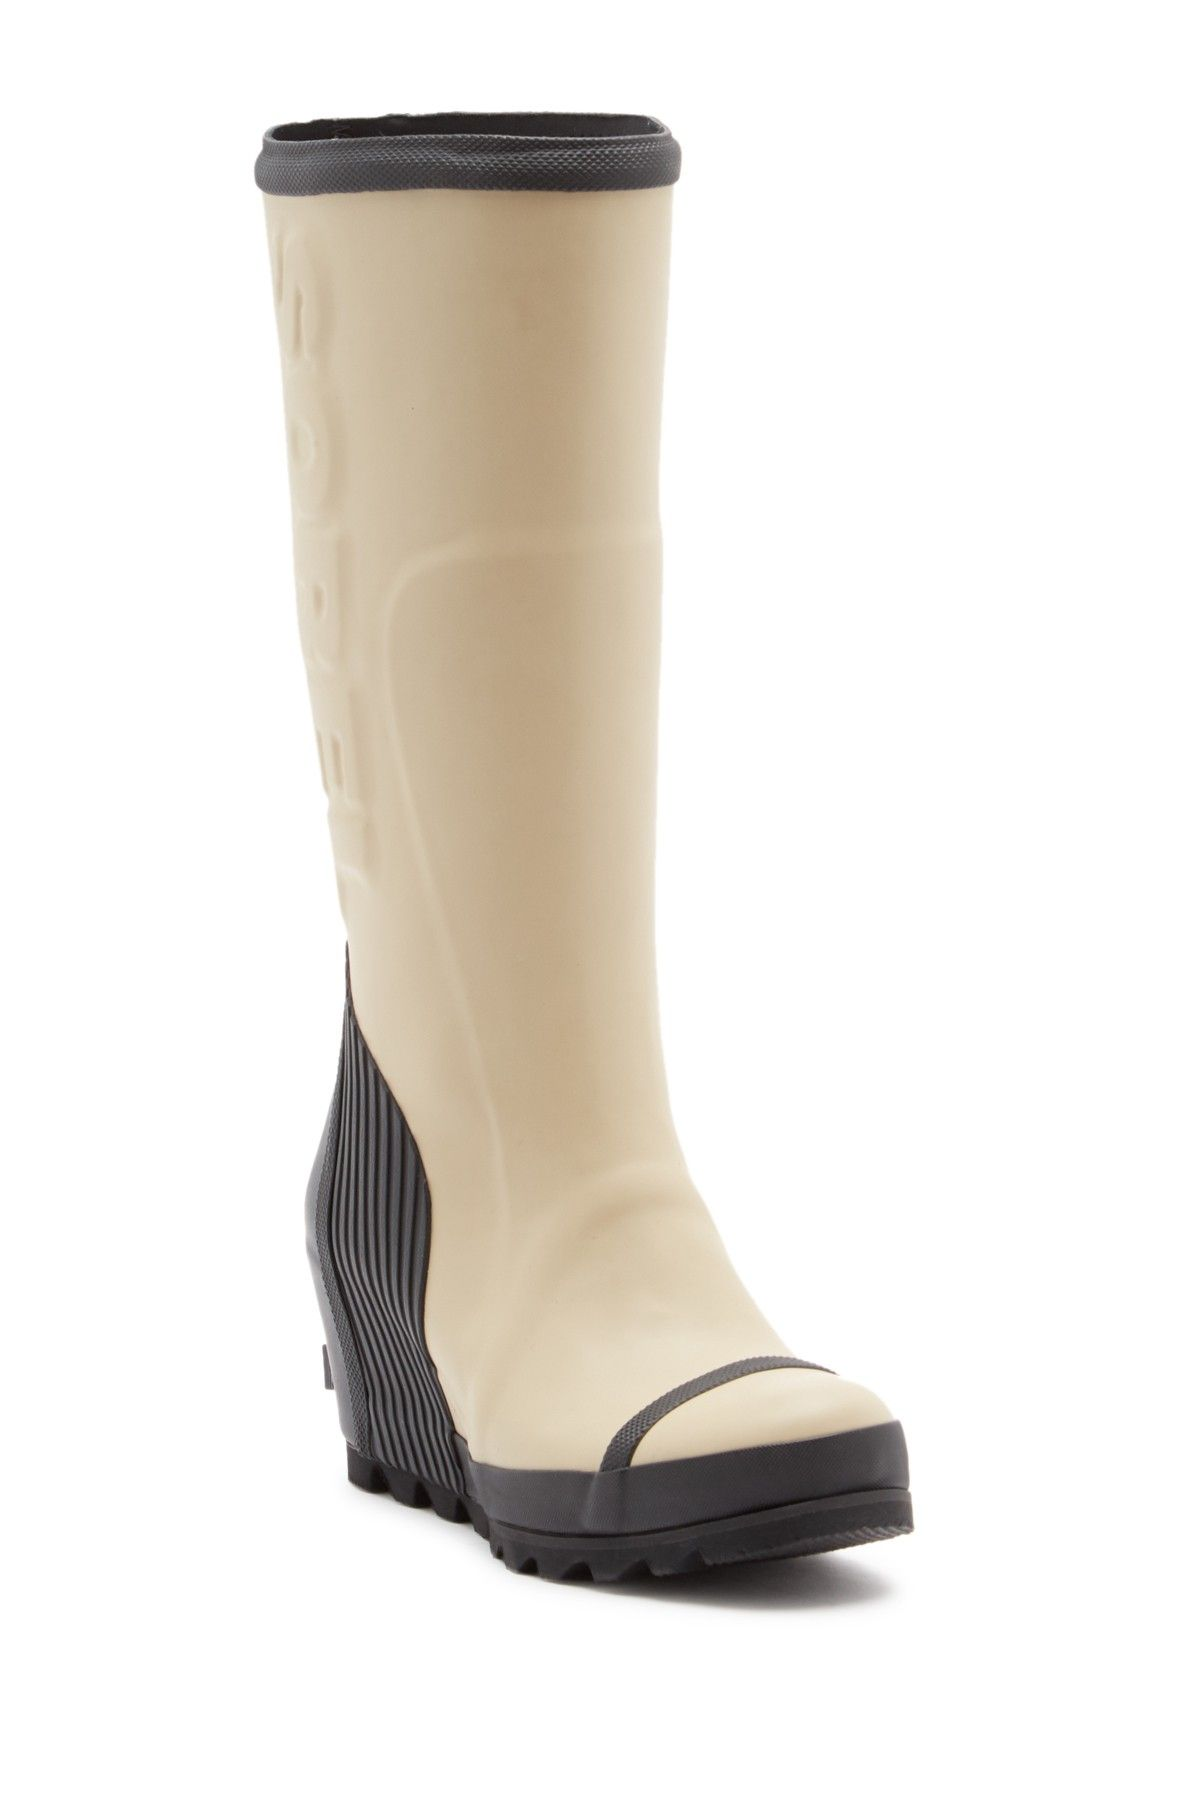 038788ba30e Sorel - Joan Tall Waterproof Wedge Rain Boot is now 60% off. Free Shipping  on orders over  100.